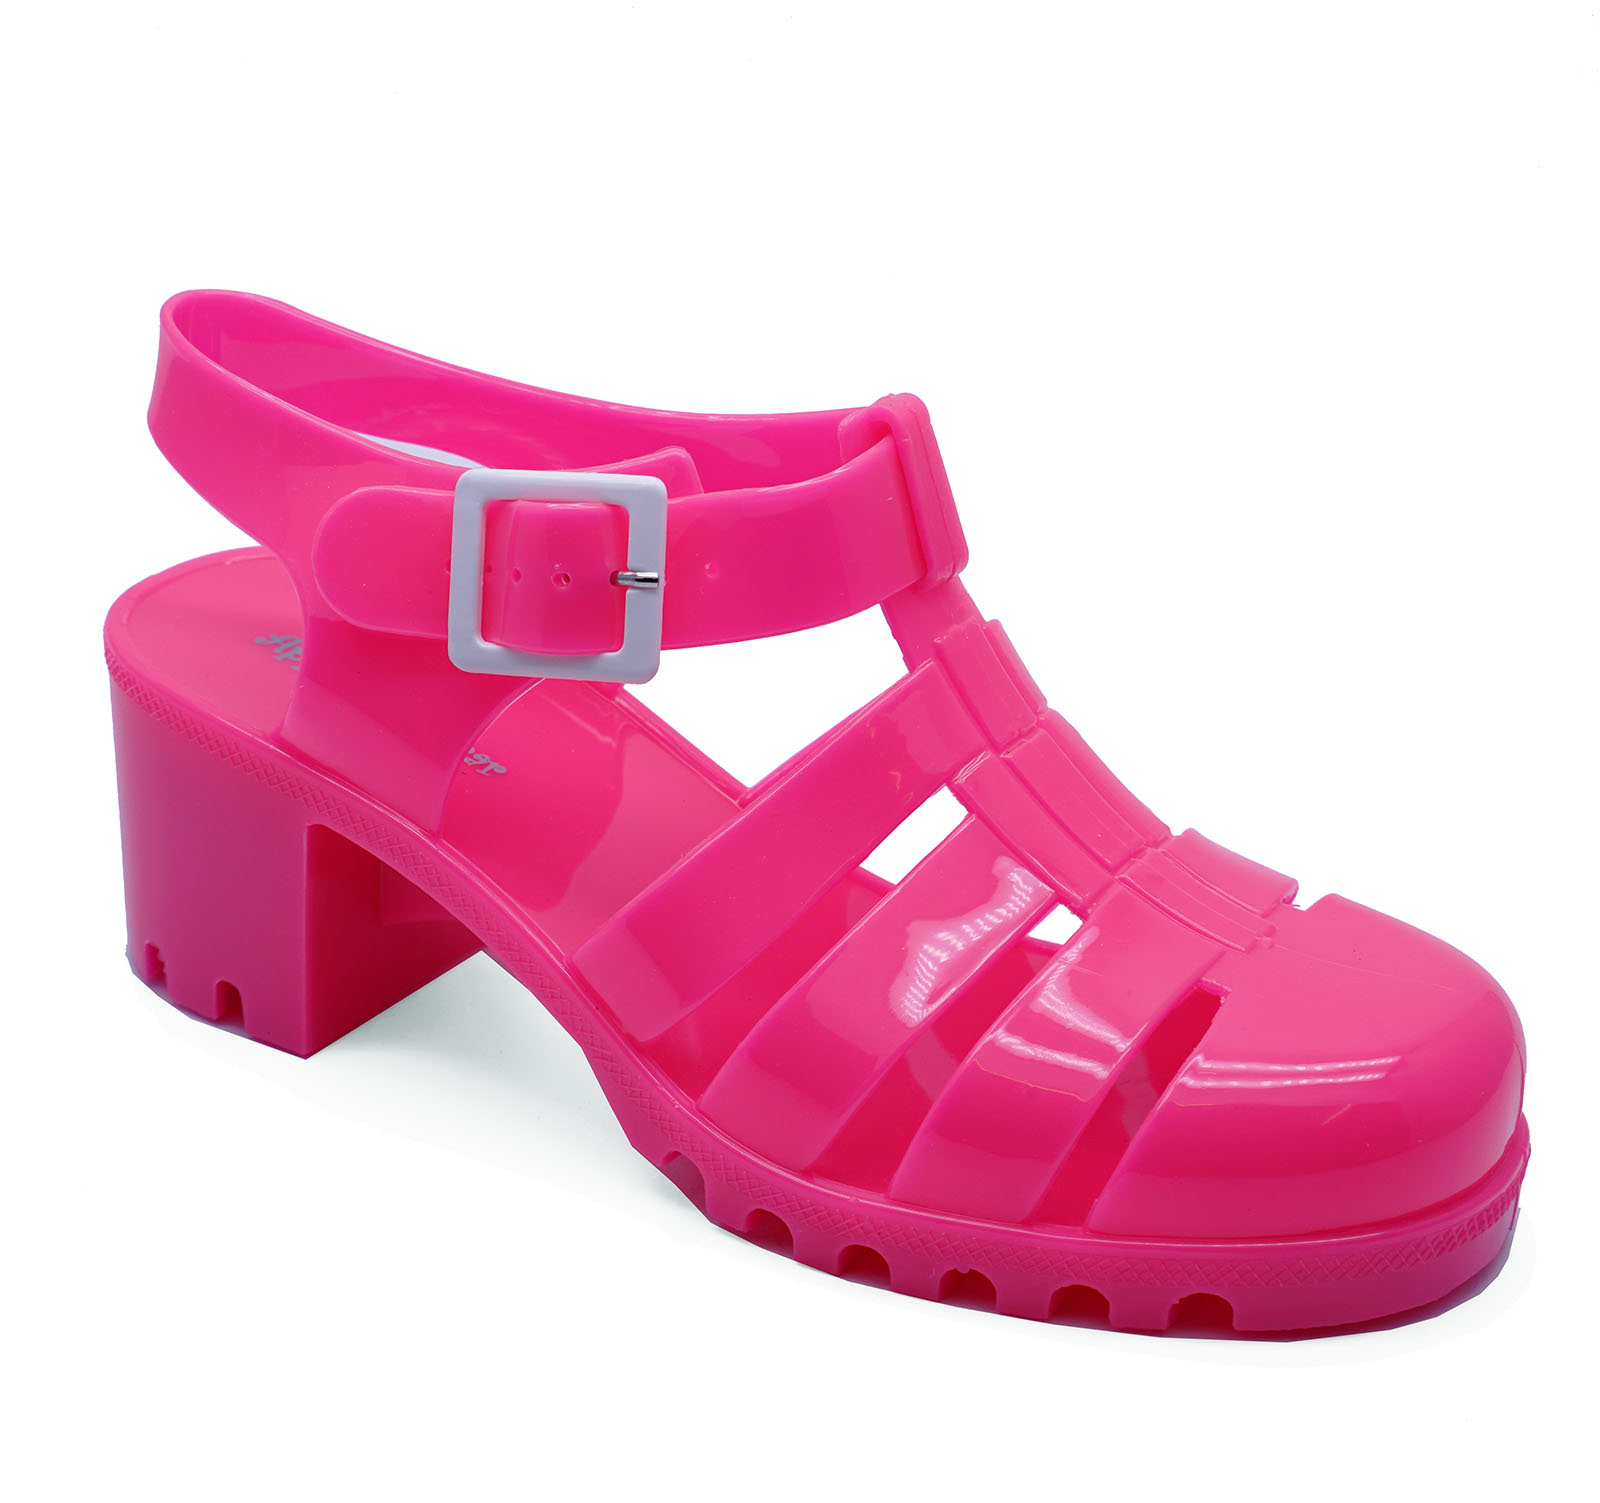 c0044b7a5cf Details about WOMENS PINK CHUNKY HEEL PLATFORM JELLY HOLIDAY SANDALS PUMPS  SHOES SIZES 3-8